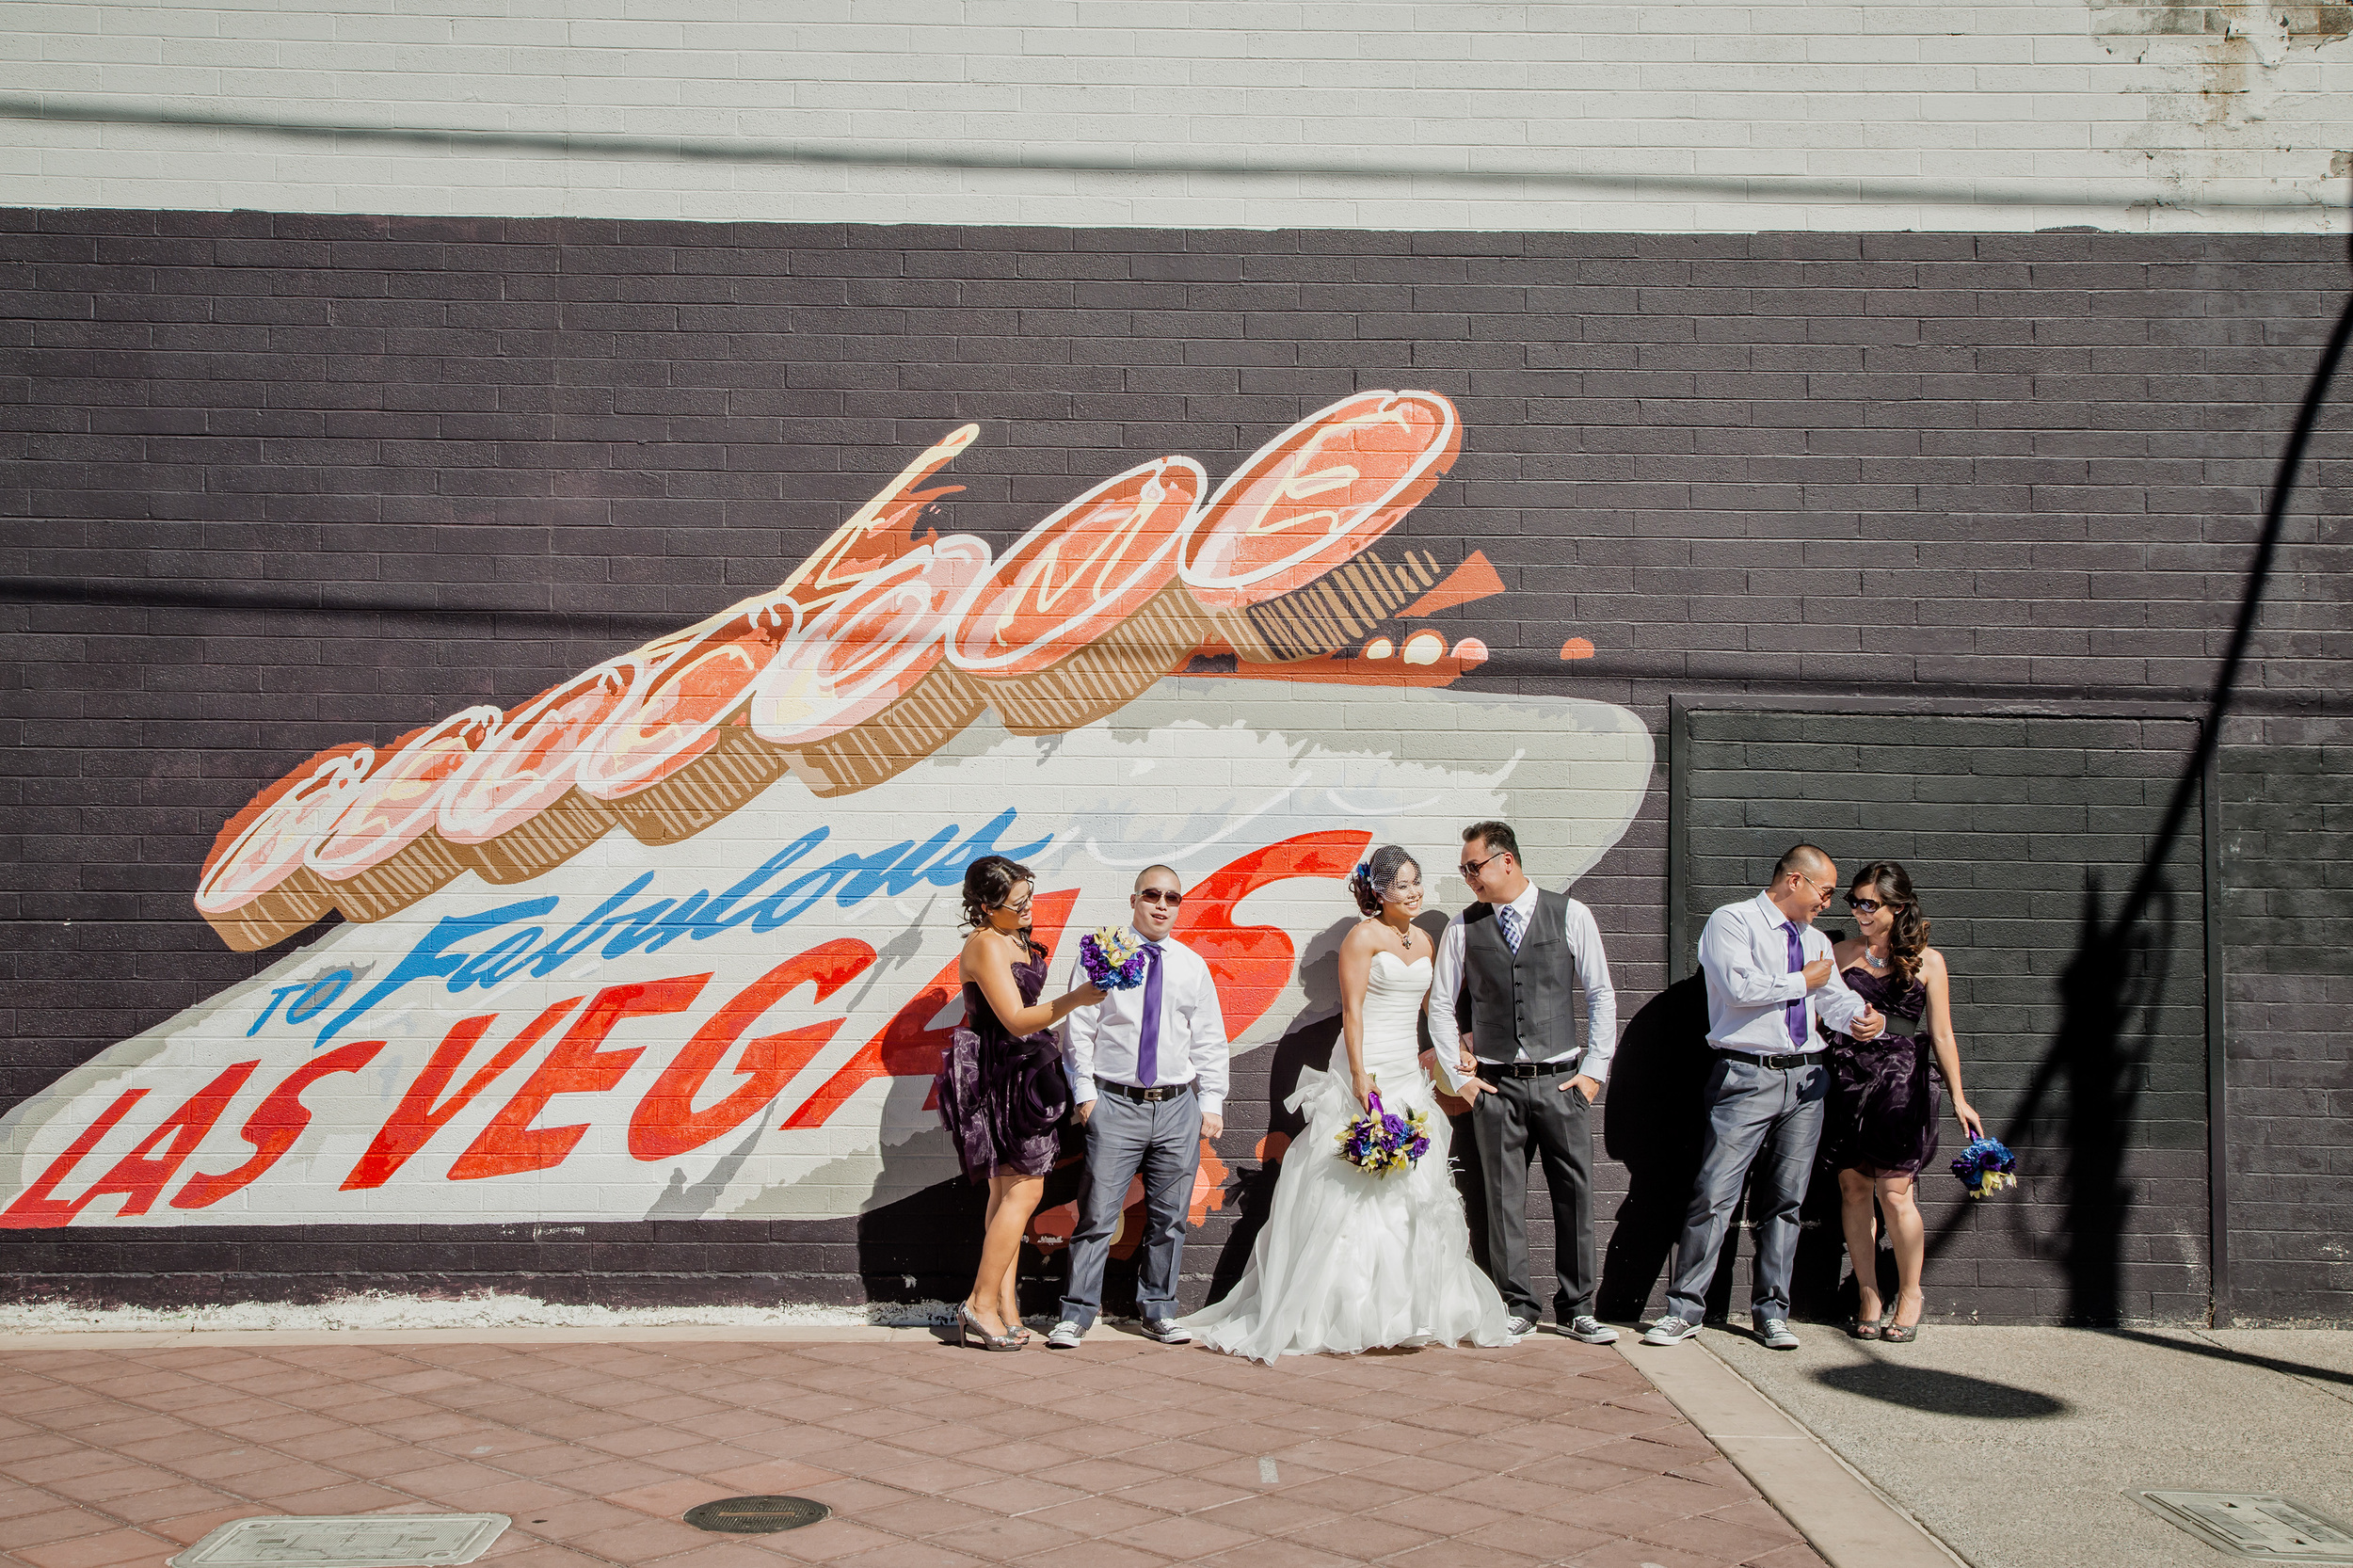 Las Vegas Street Art provided a cool background and marker for their destination wedding.